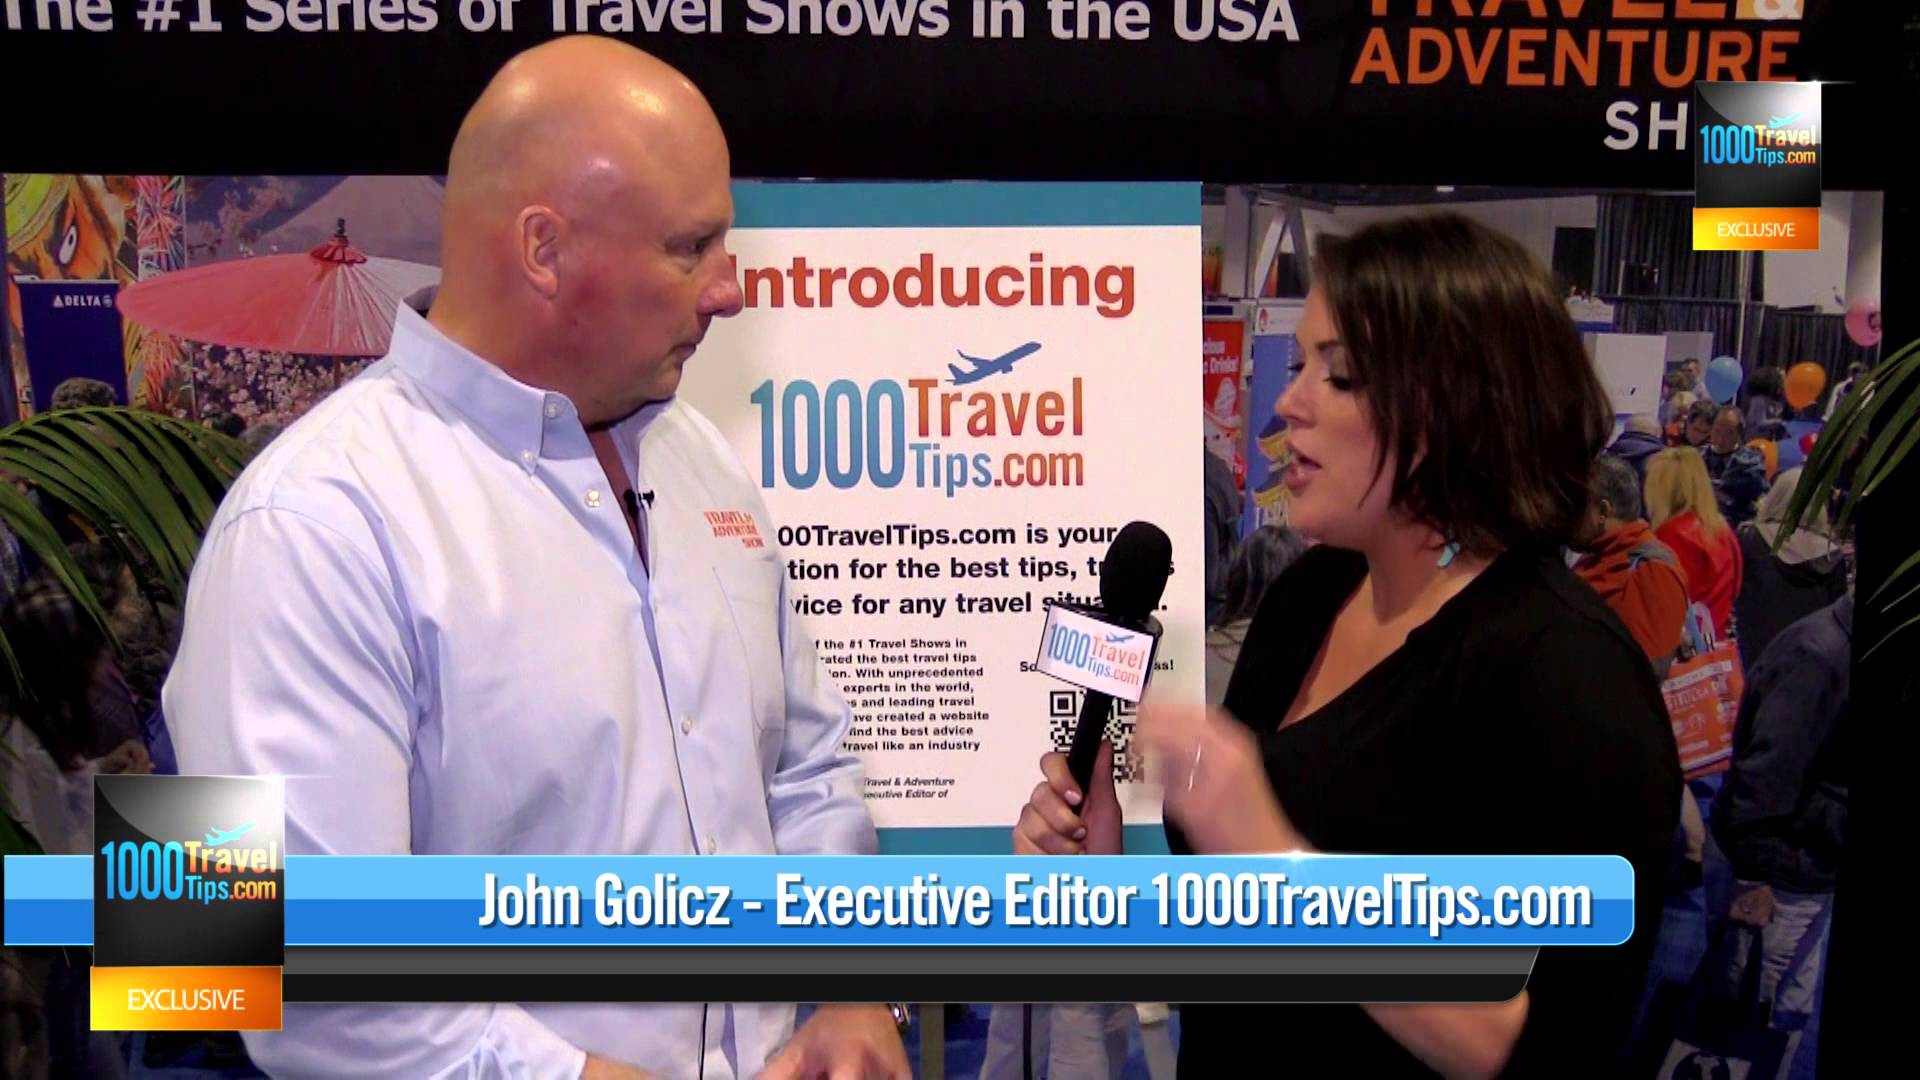 John Golicz's Top Tips for Tech & Travel